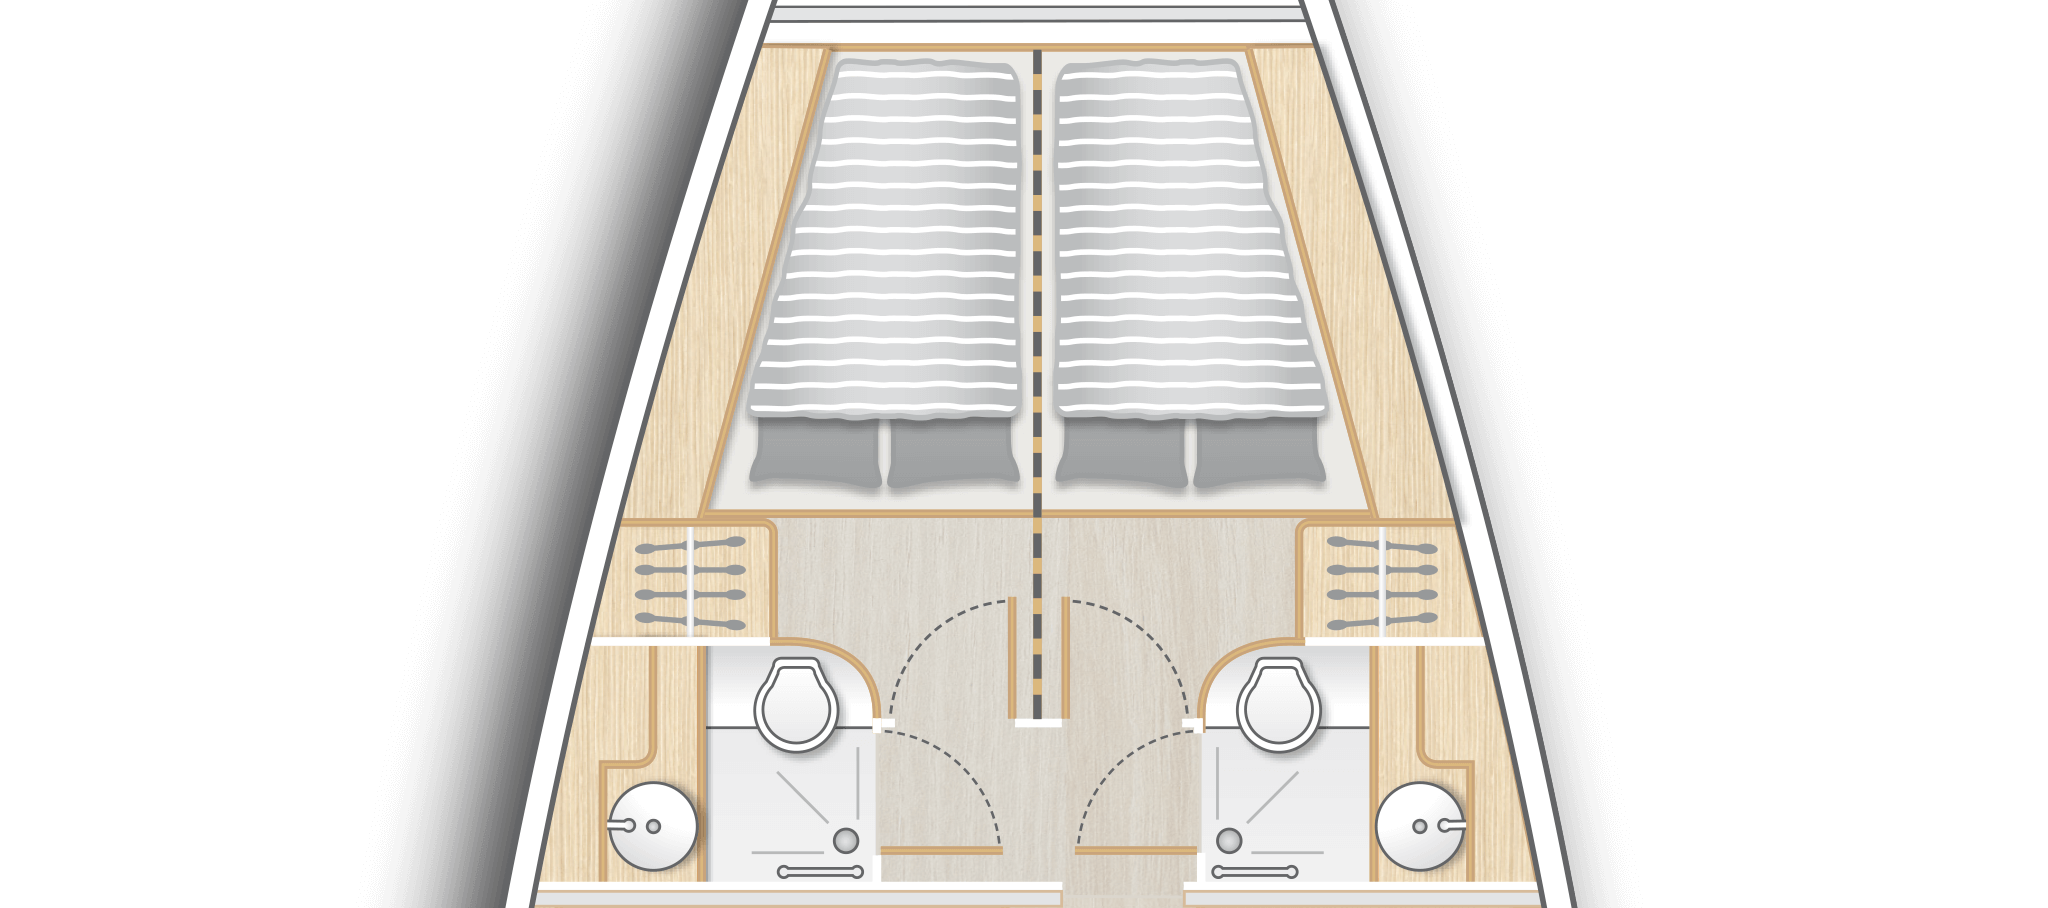 B3: 2 fwd cabins with double berth, storage space and separate head with shower - convertible by a removable bulkhead into a single cabin